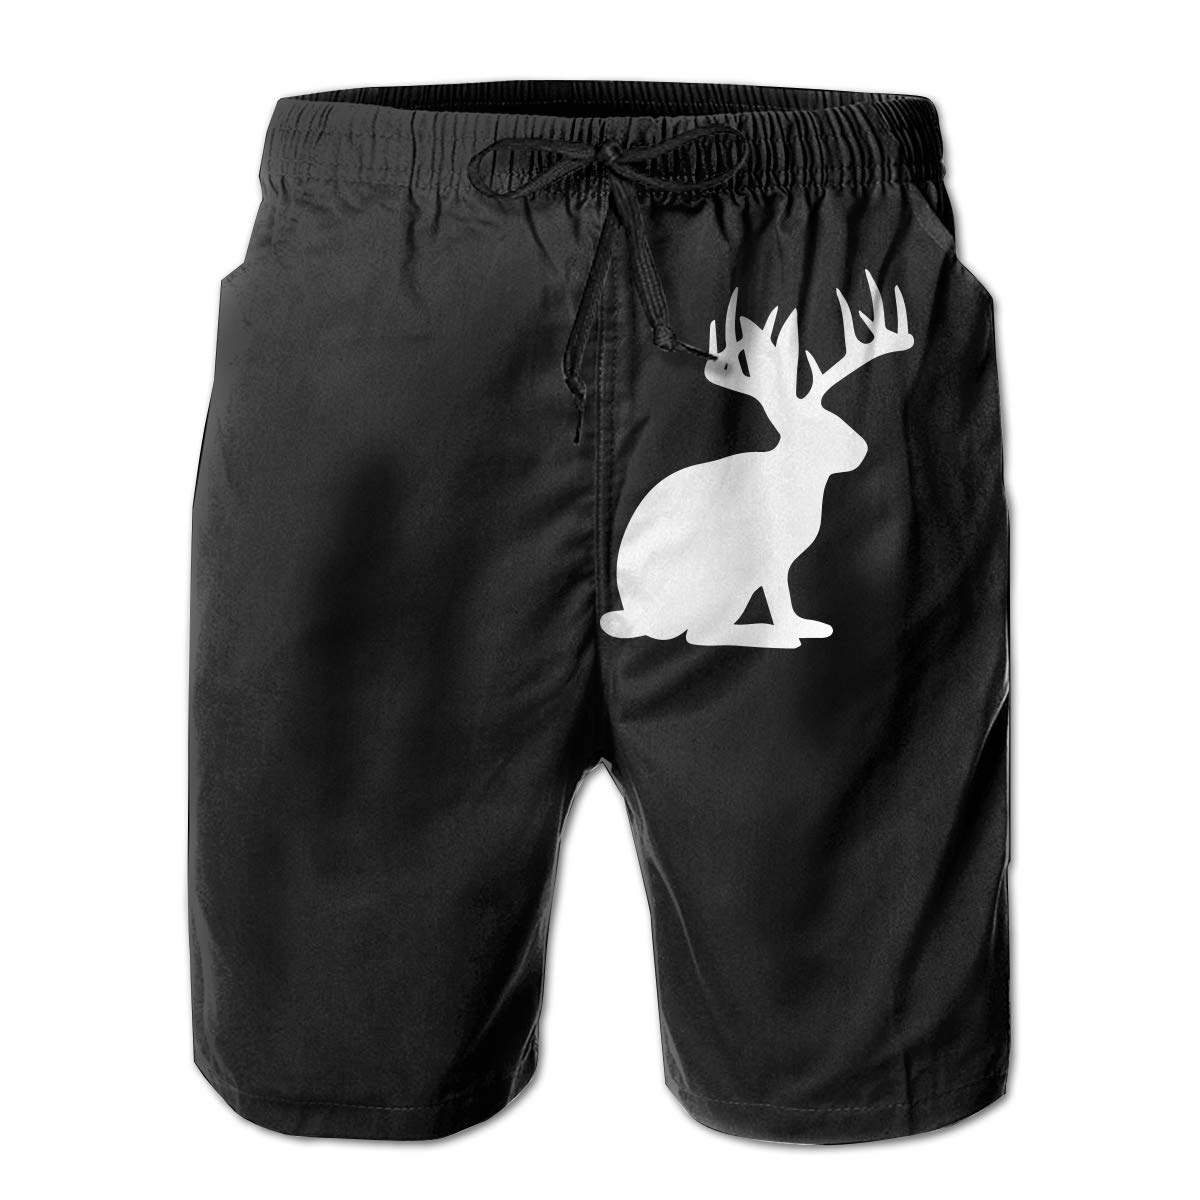 Casual Swimsuit with Pockets Yt92Pl@00 Mens 100/% Polyester Jackalopes Beachwear